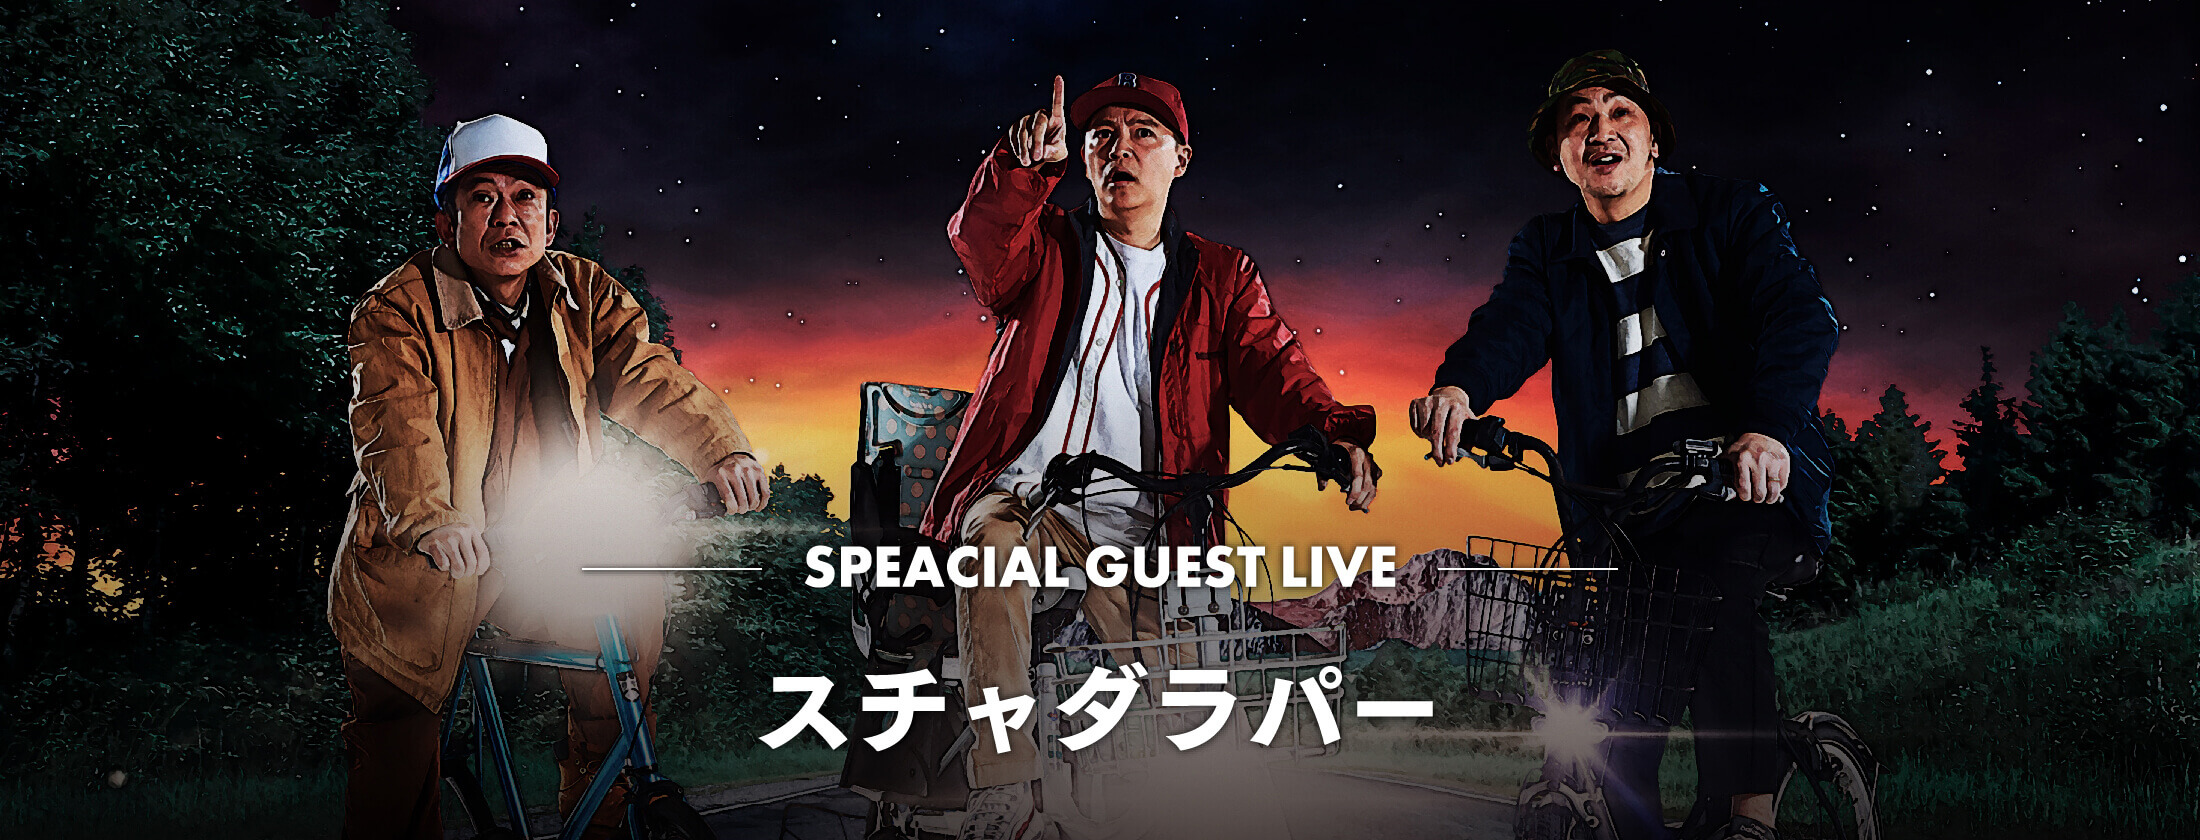 Special Guest Live スチャダラパー